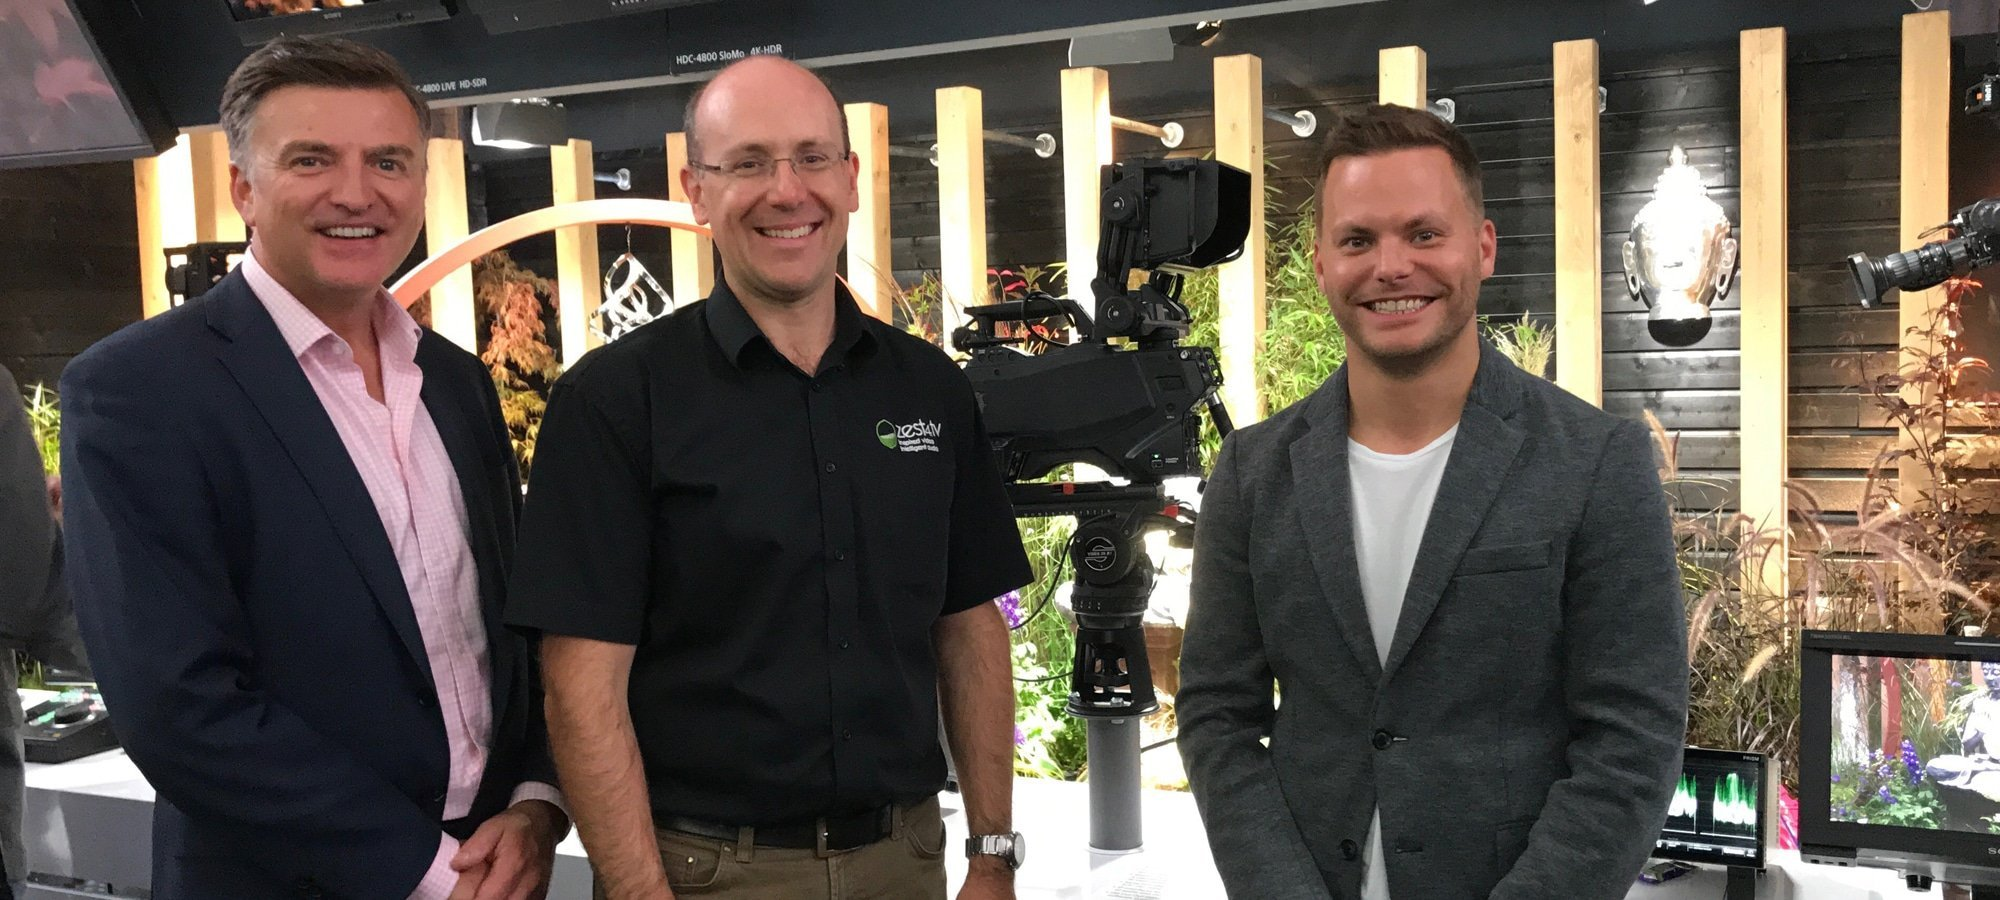 Zest4.TV adds 4K live production with acquisition of Sony HDC-4300 camera channels